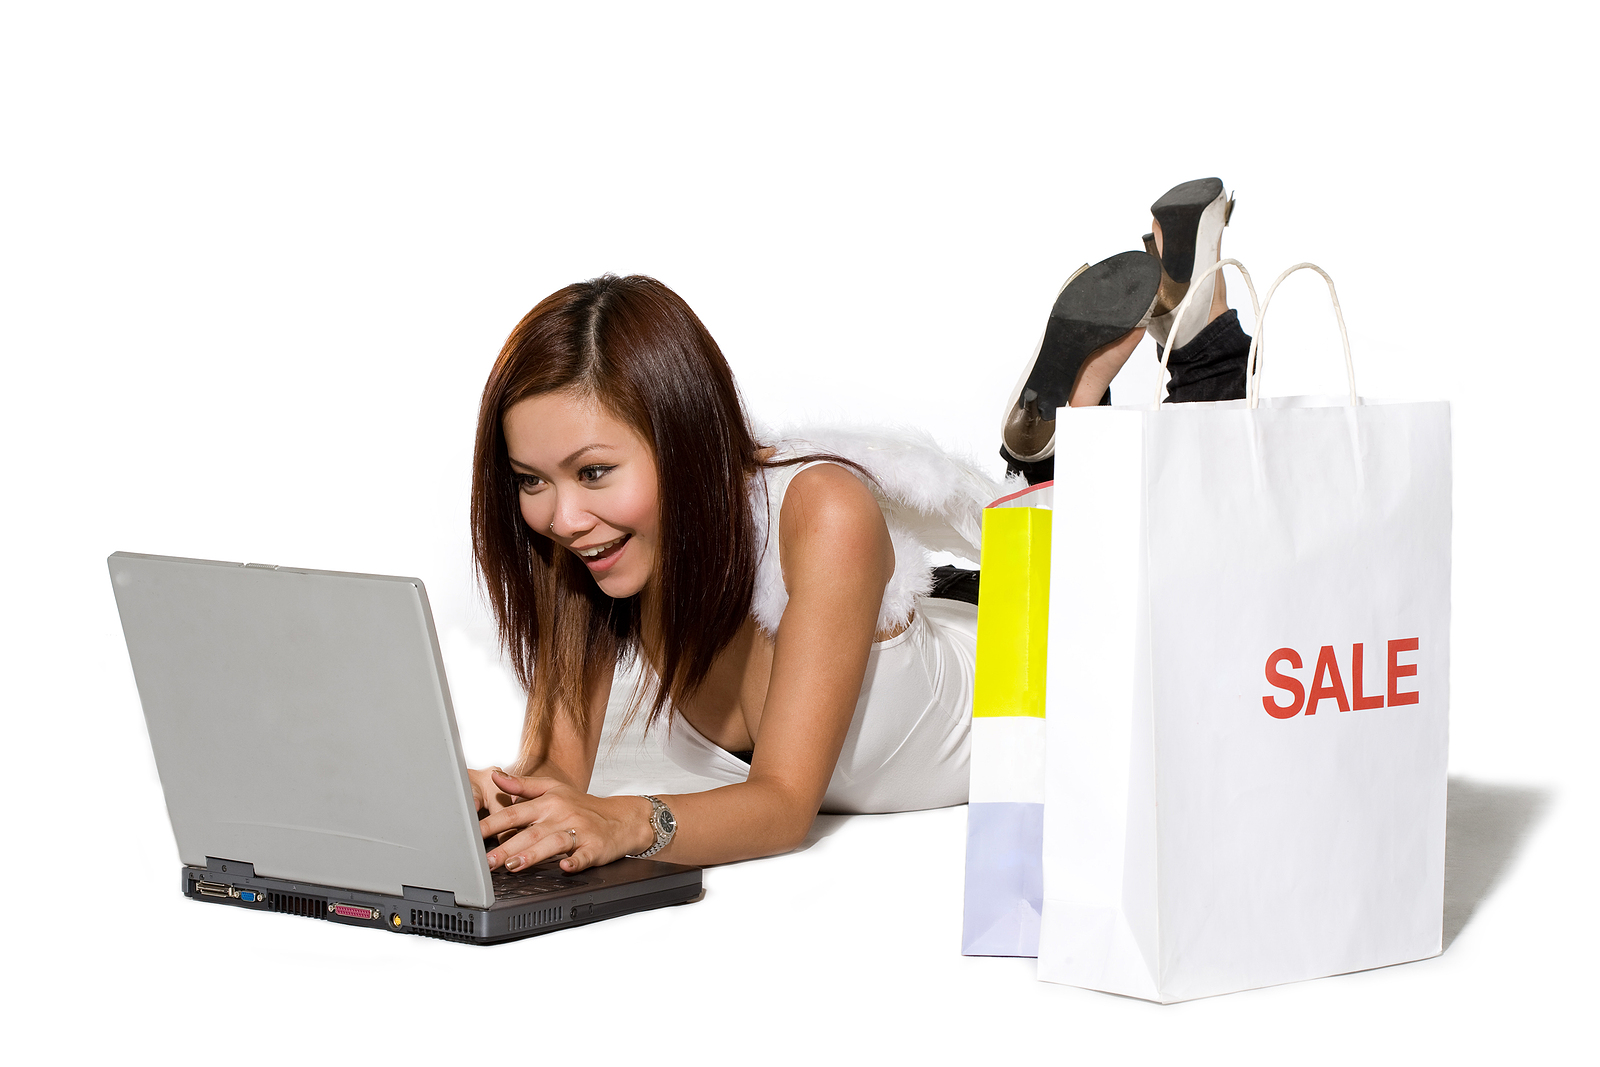 How to Prepare Your eCommerce Store for the Black Friday Rush